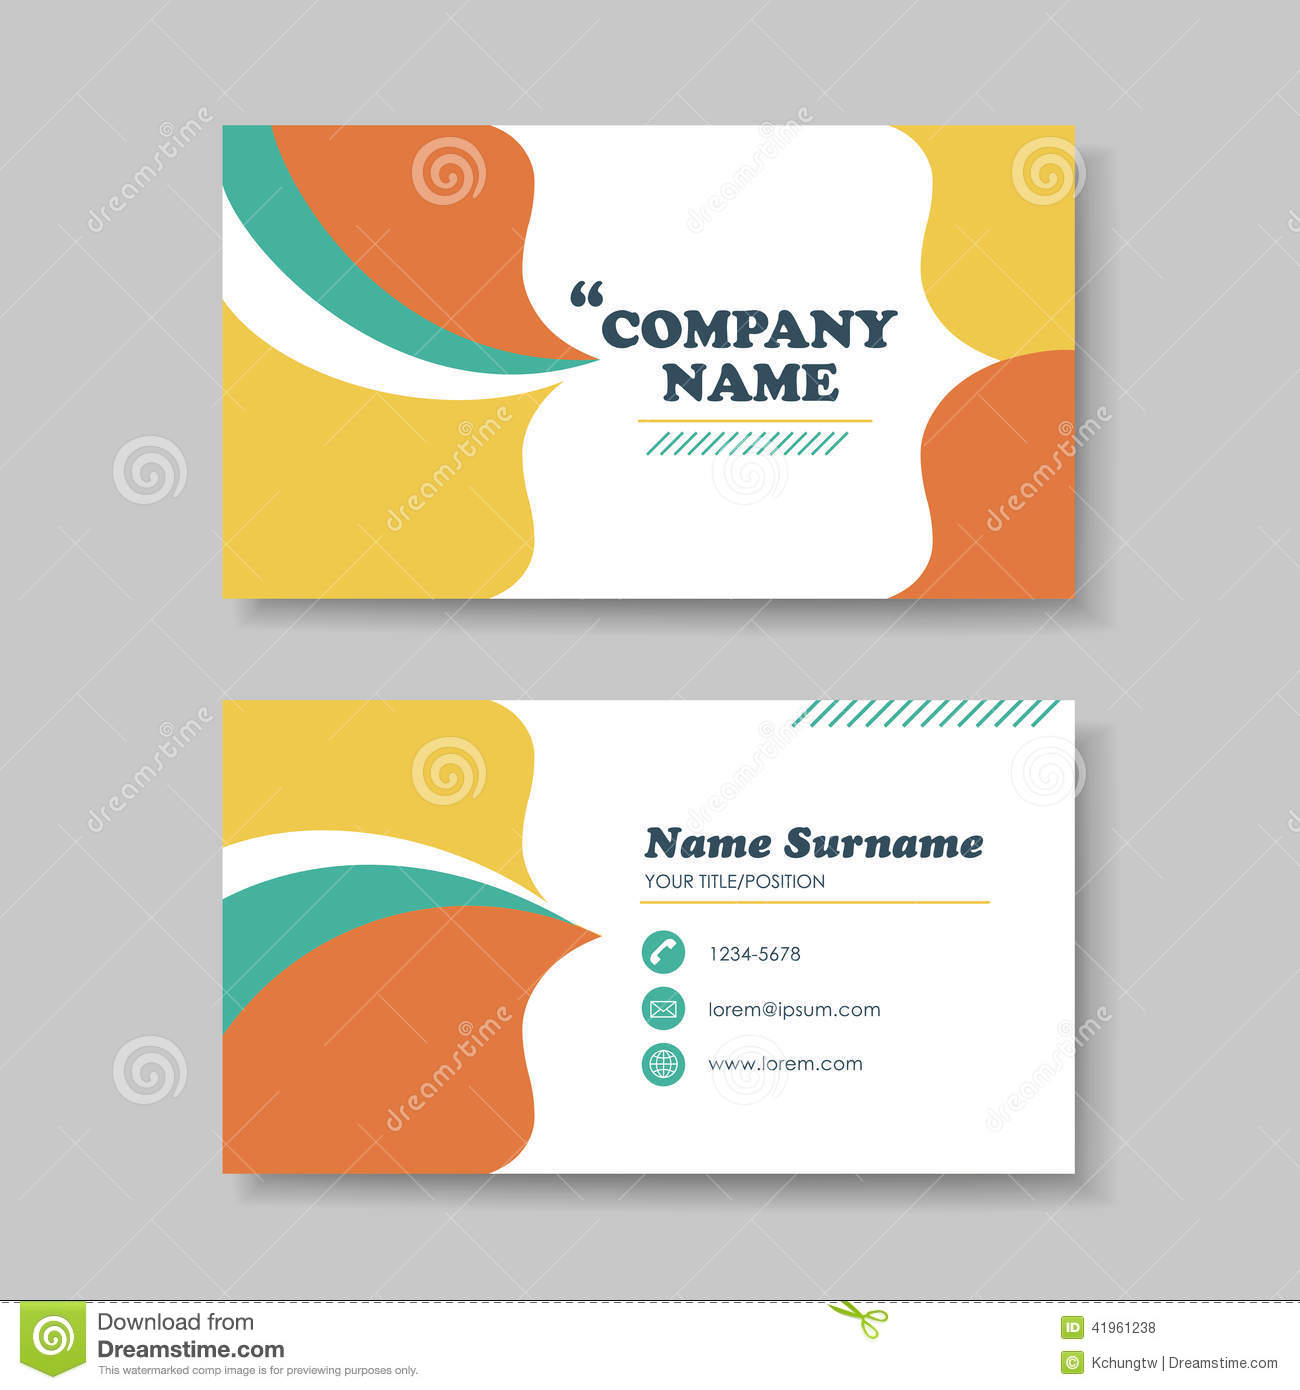 free vector business card templates business card design. Black Bedroom Furniture Sets. Home Design Ideas